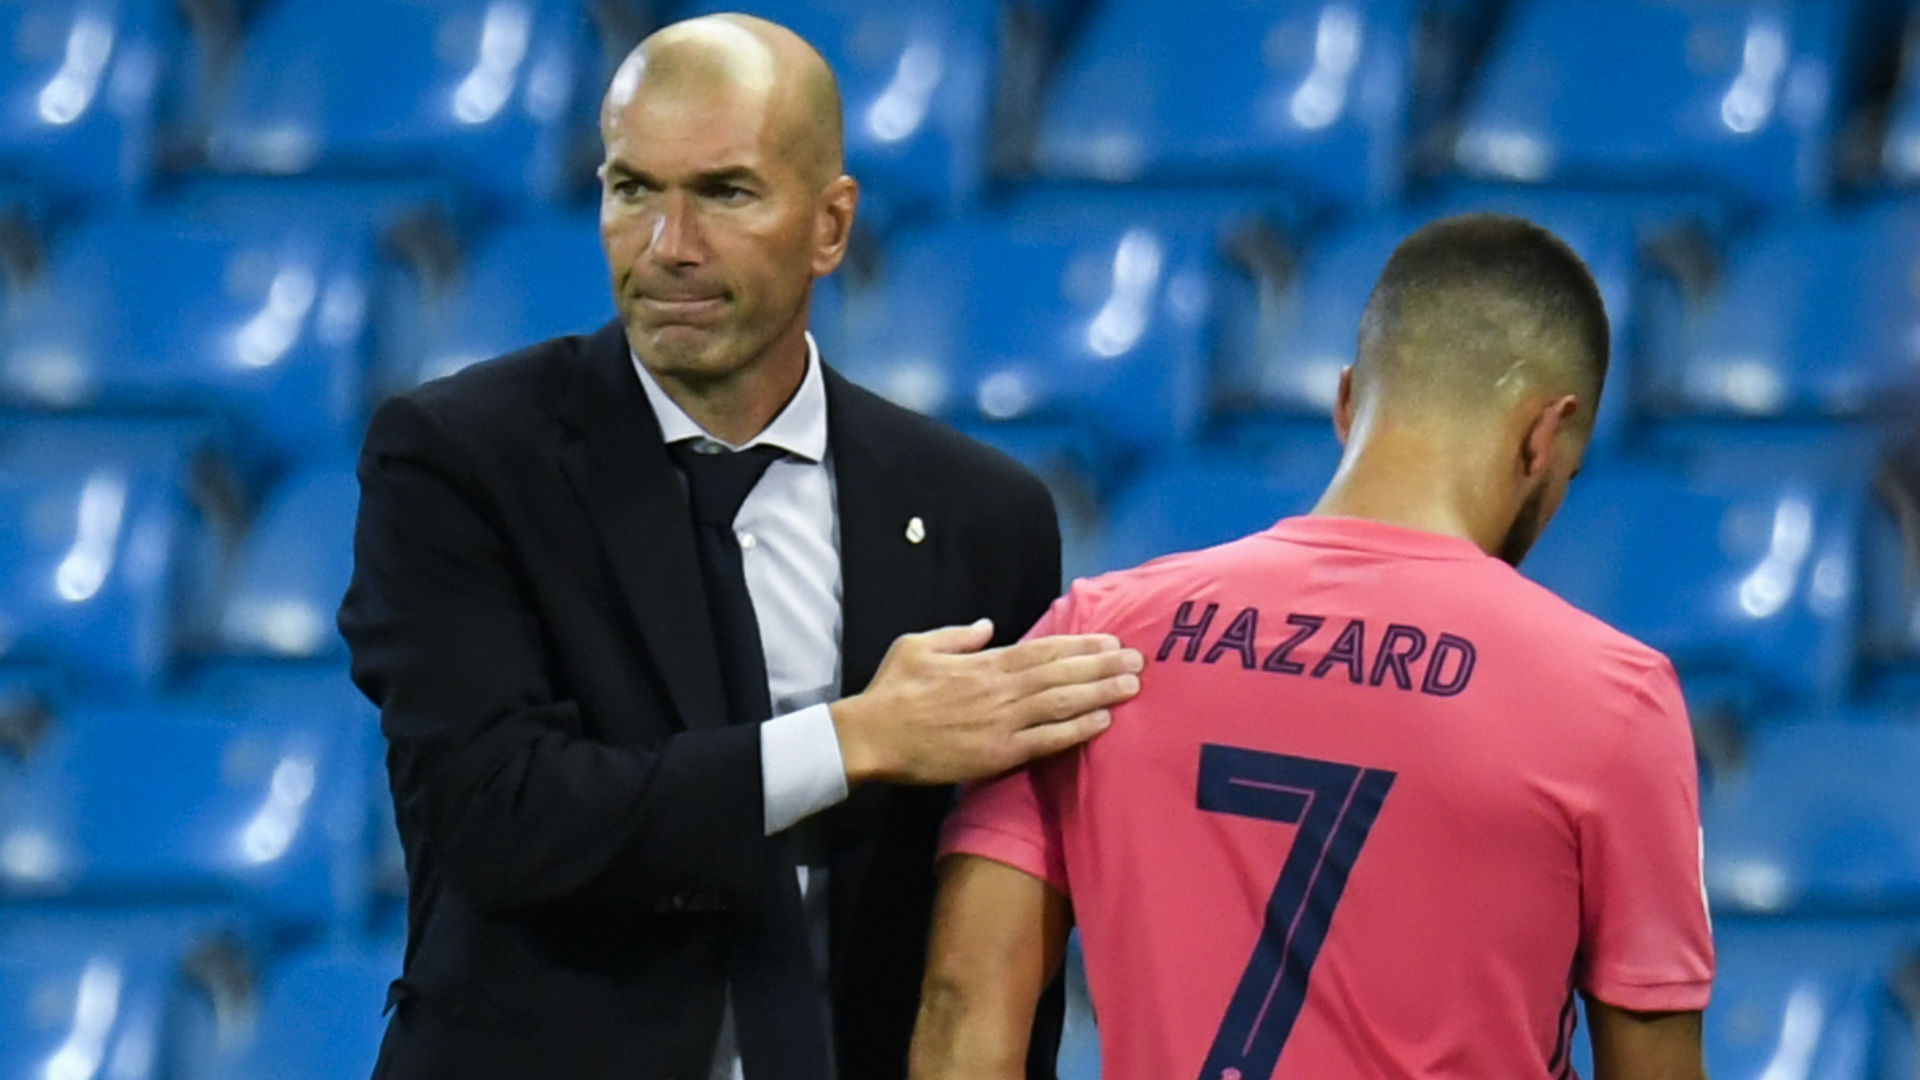 Zidane unsure how long 'upset' Hazard will be sidelined after latest Real Madrid setback